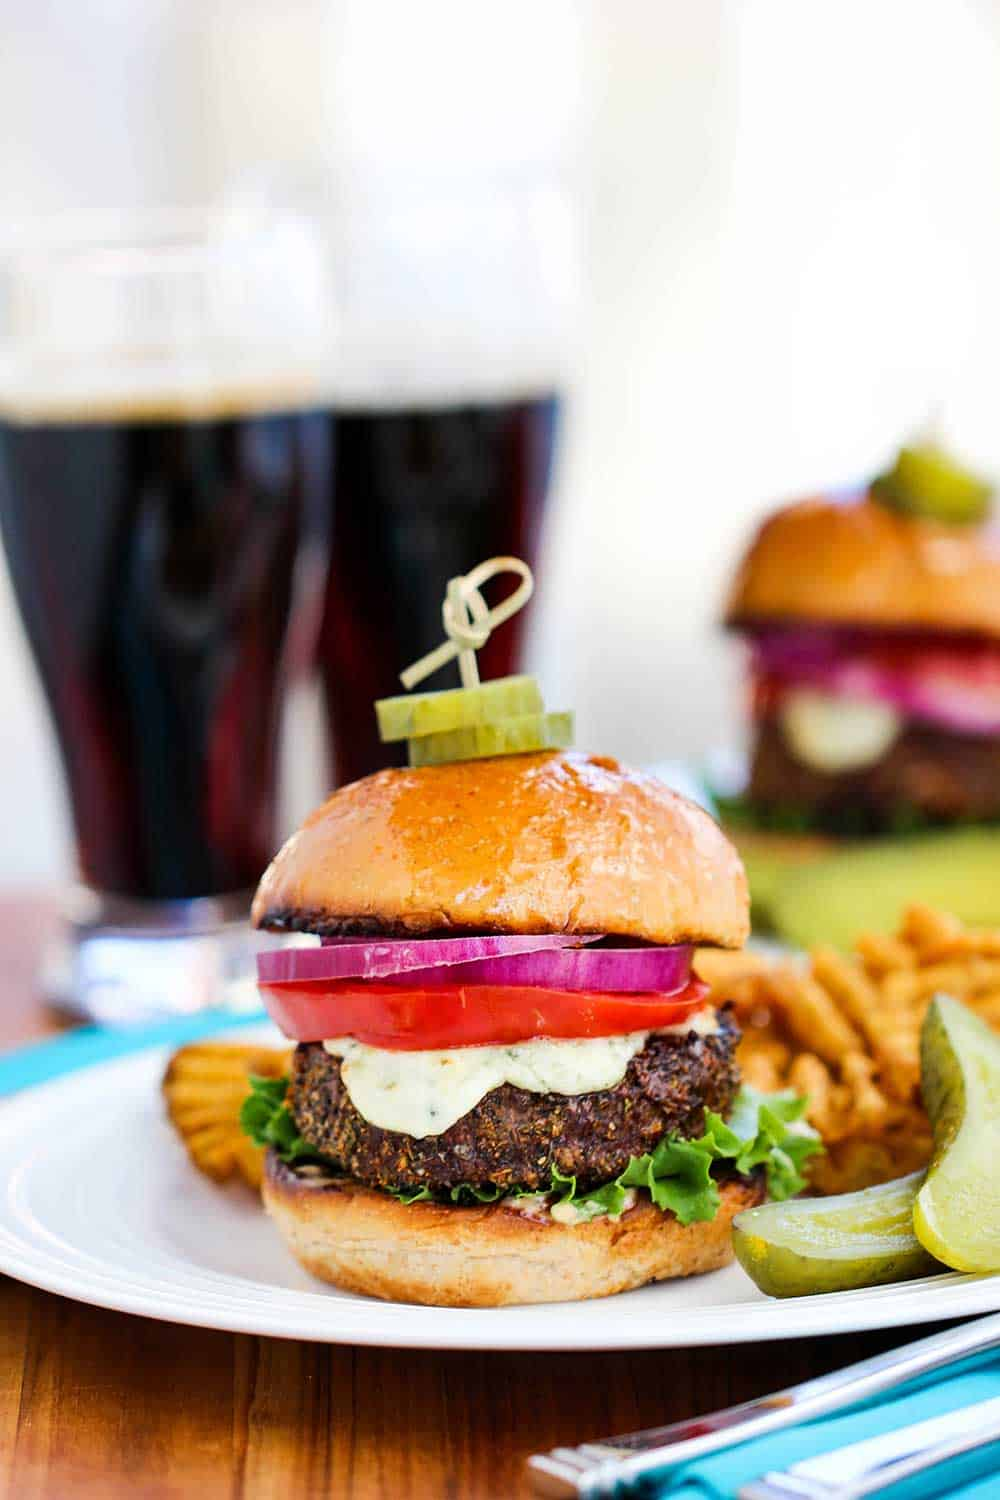 A black and bleu burger on a plate in front of two glasses of dark beer.